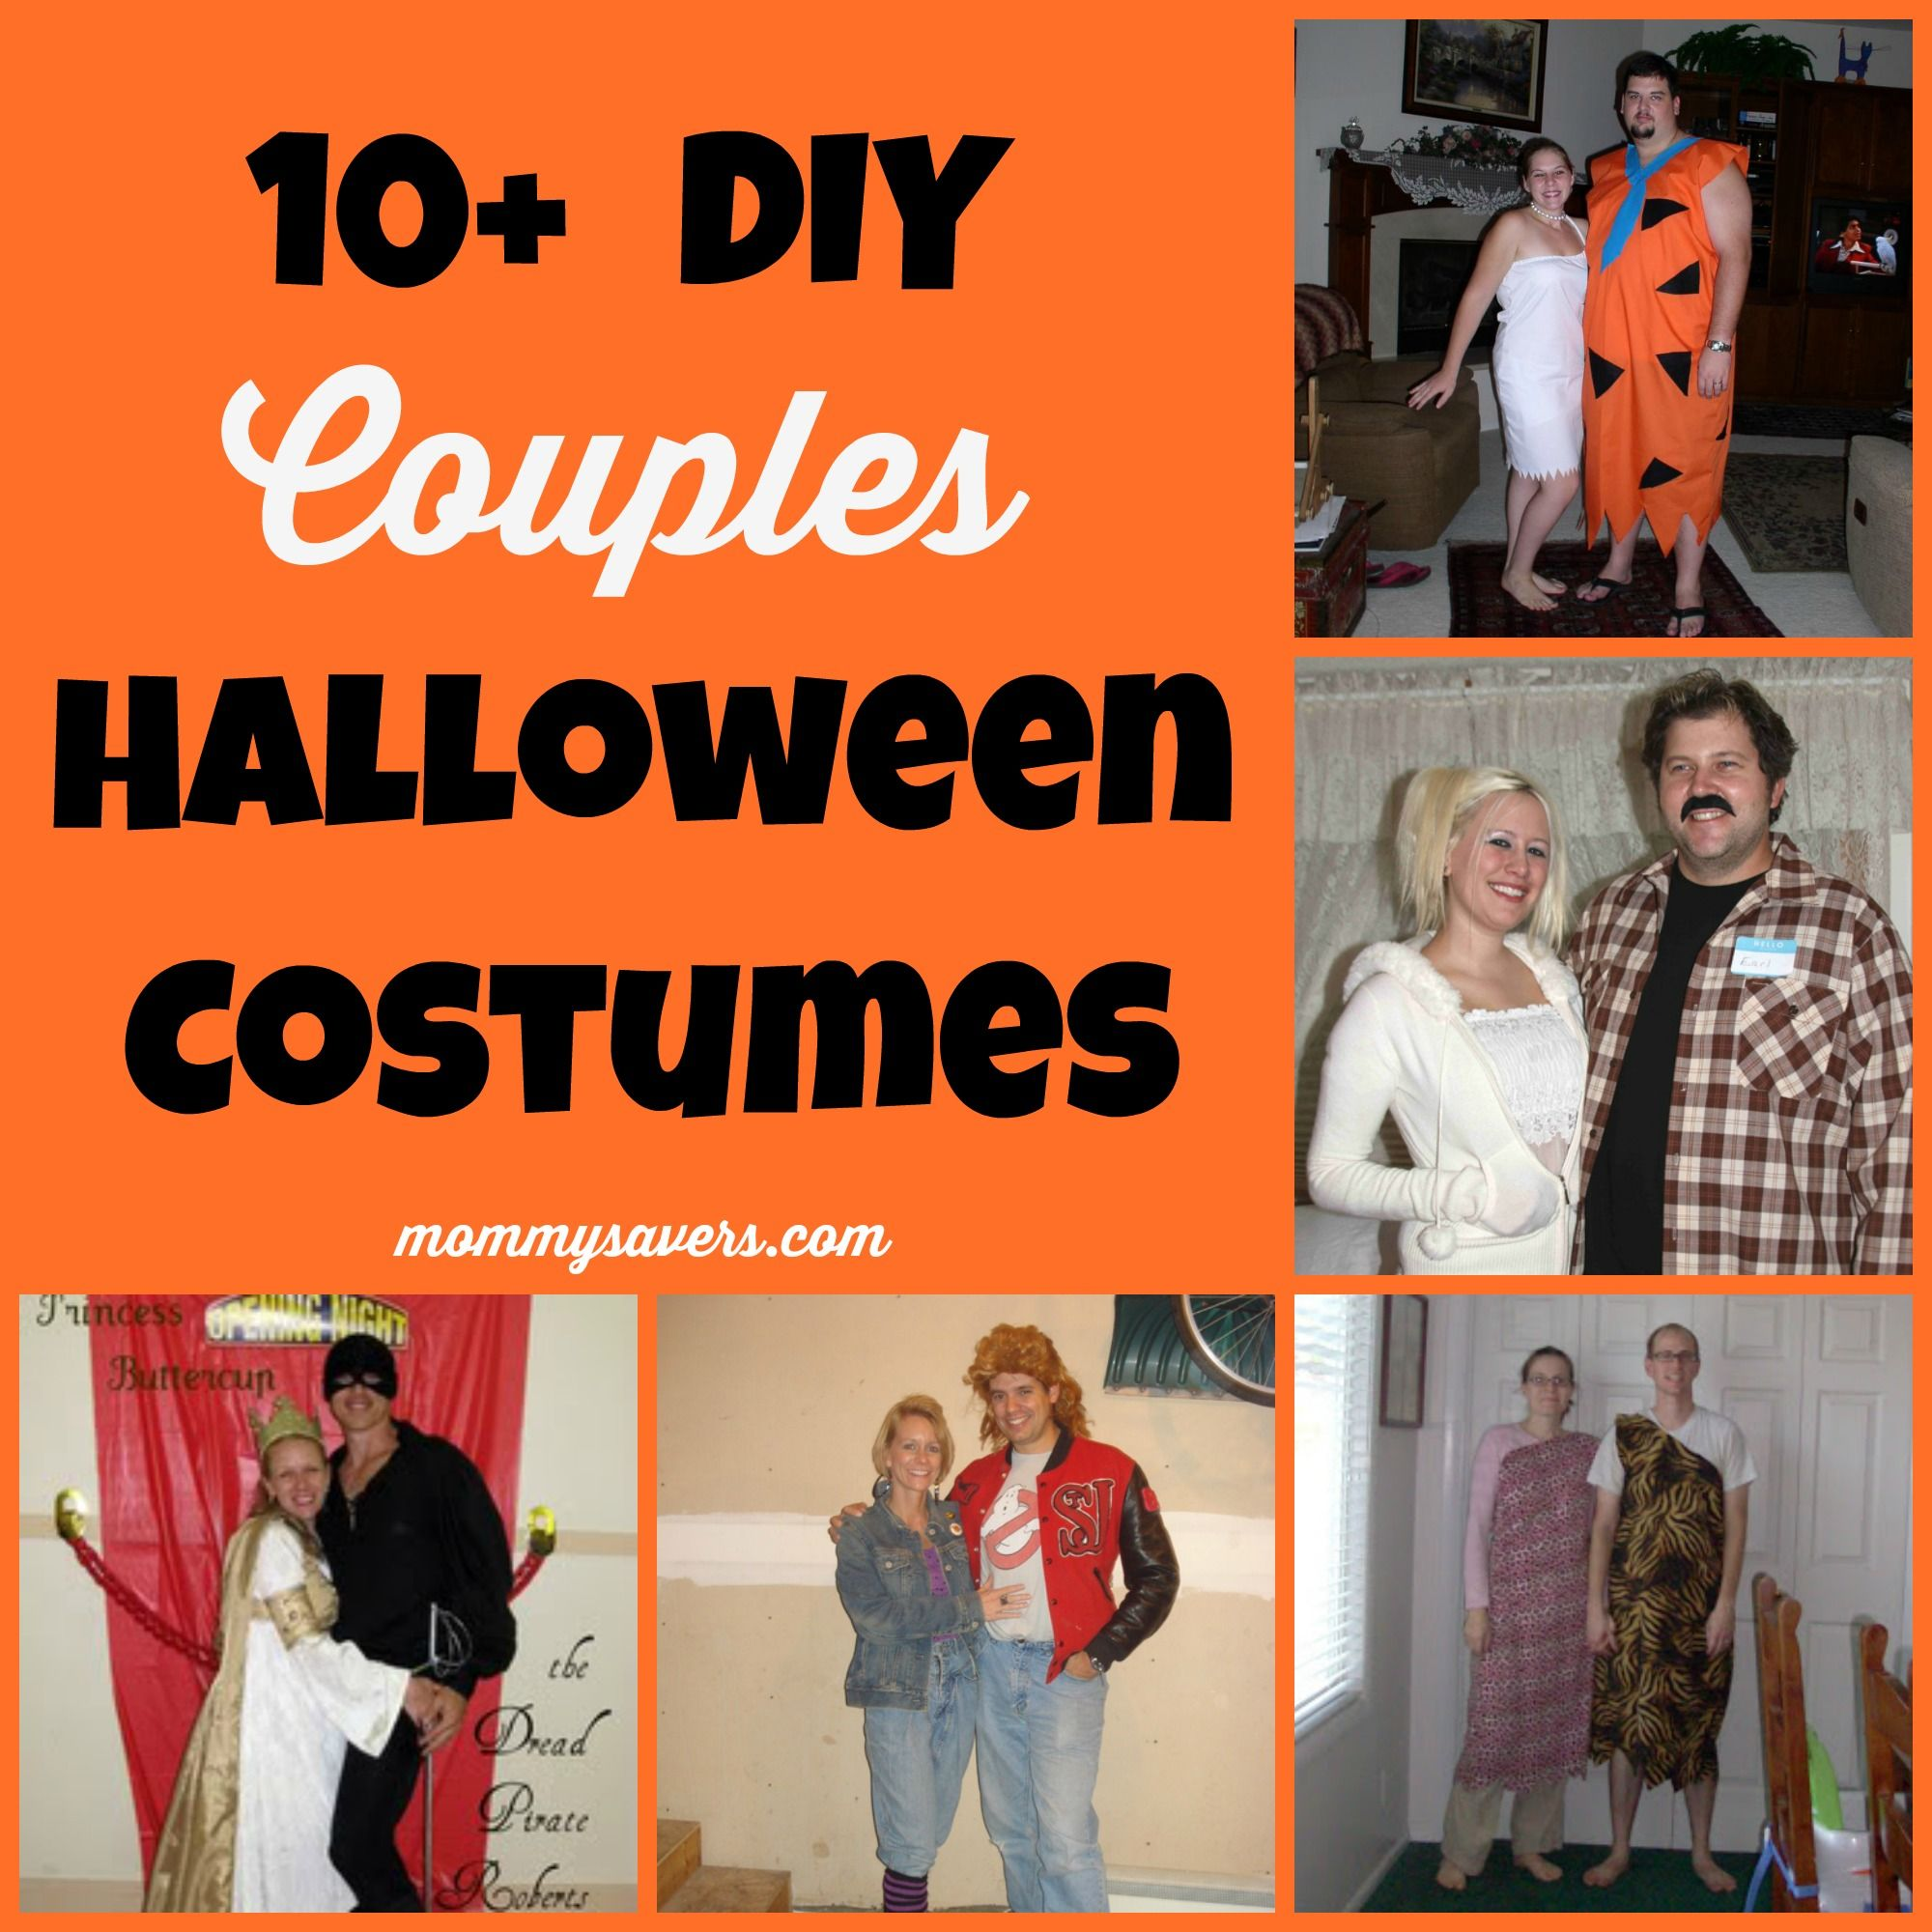 10 diy couples halloween costume ideas - Simple Diy Halloween Costumes For Adults